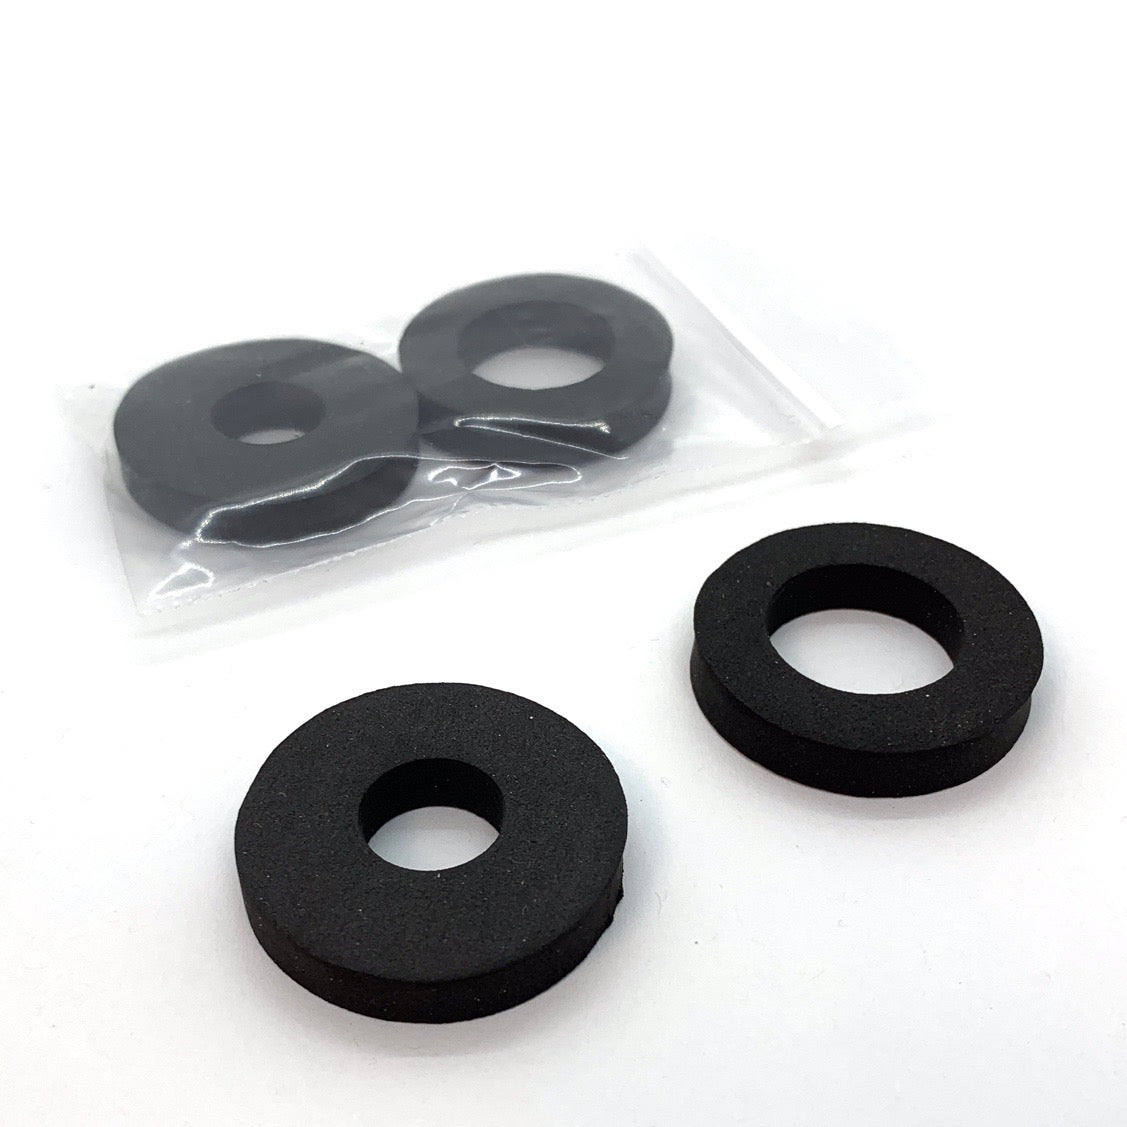 Black foam rubber washers for craft lathe